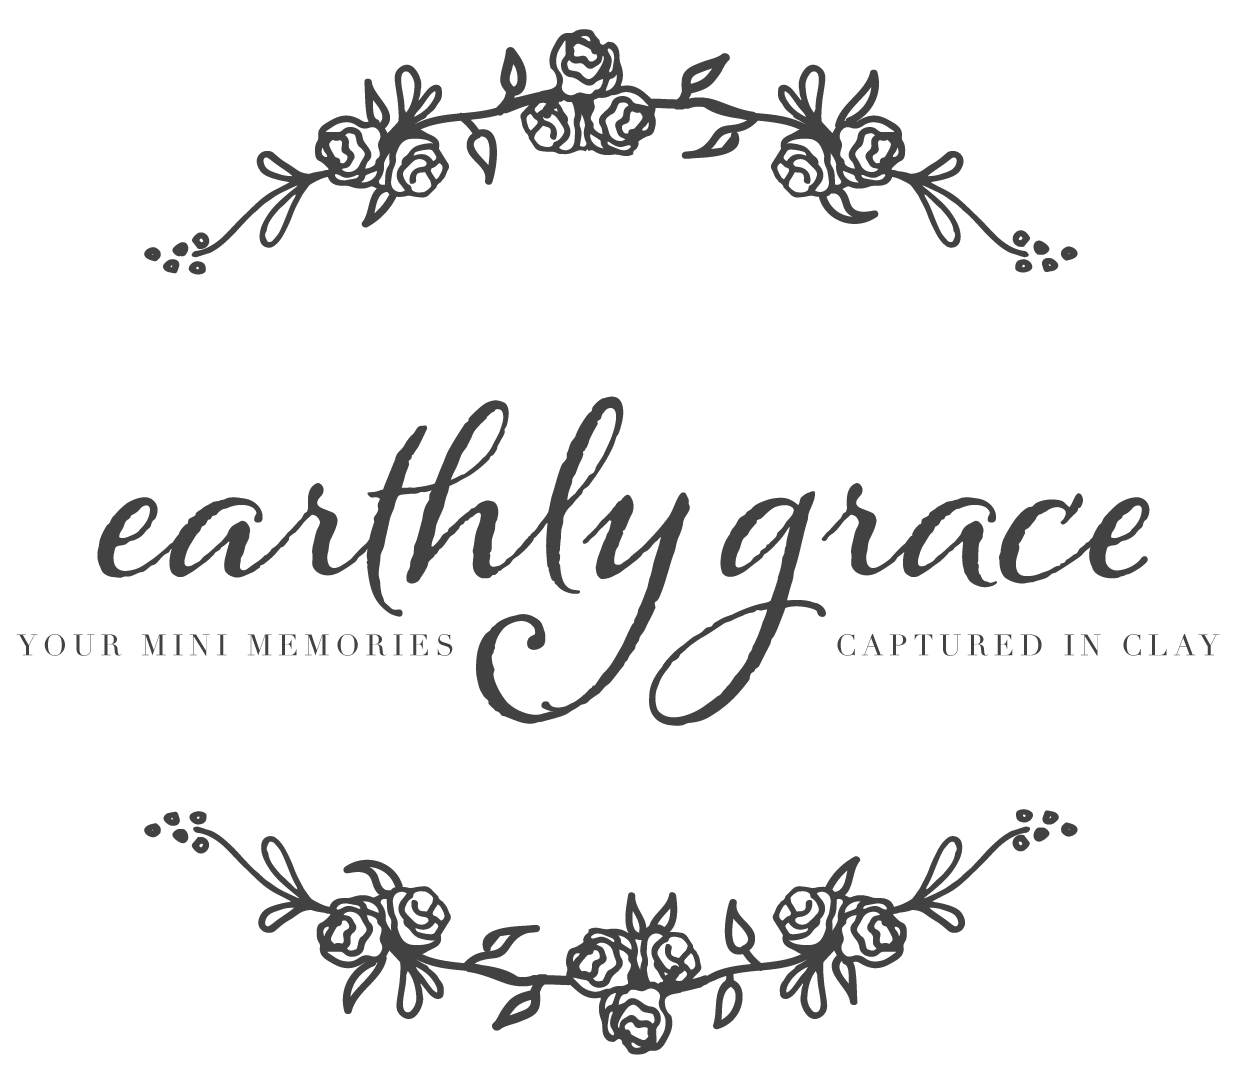 Earthly Grace